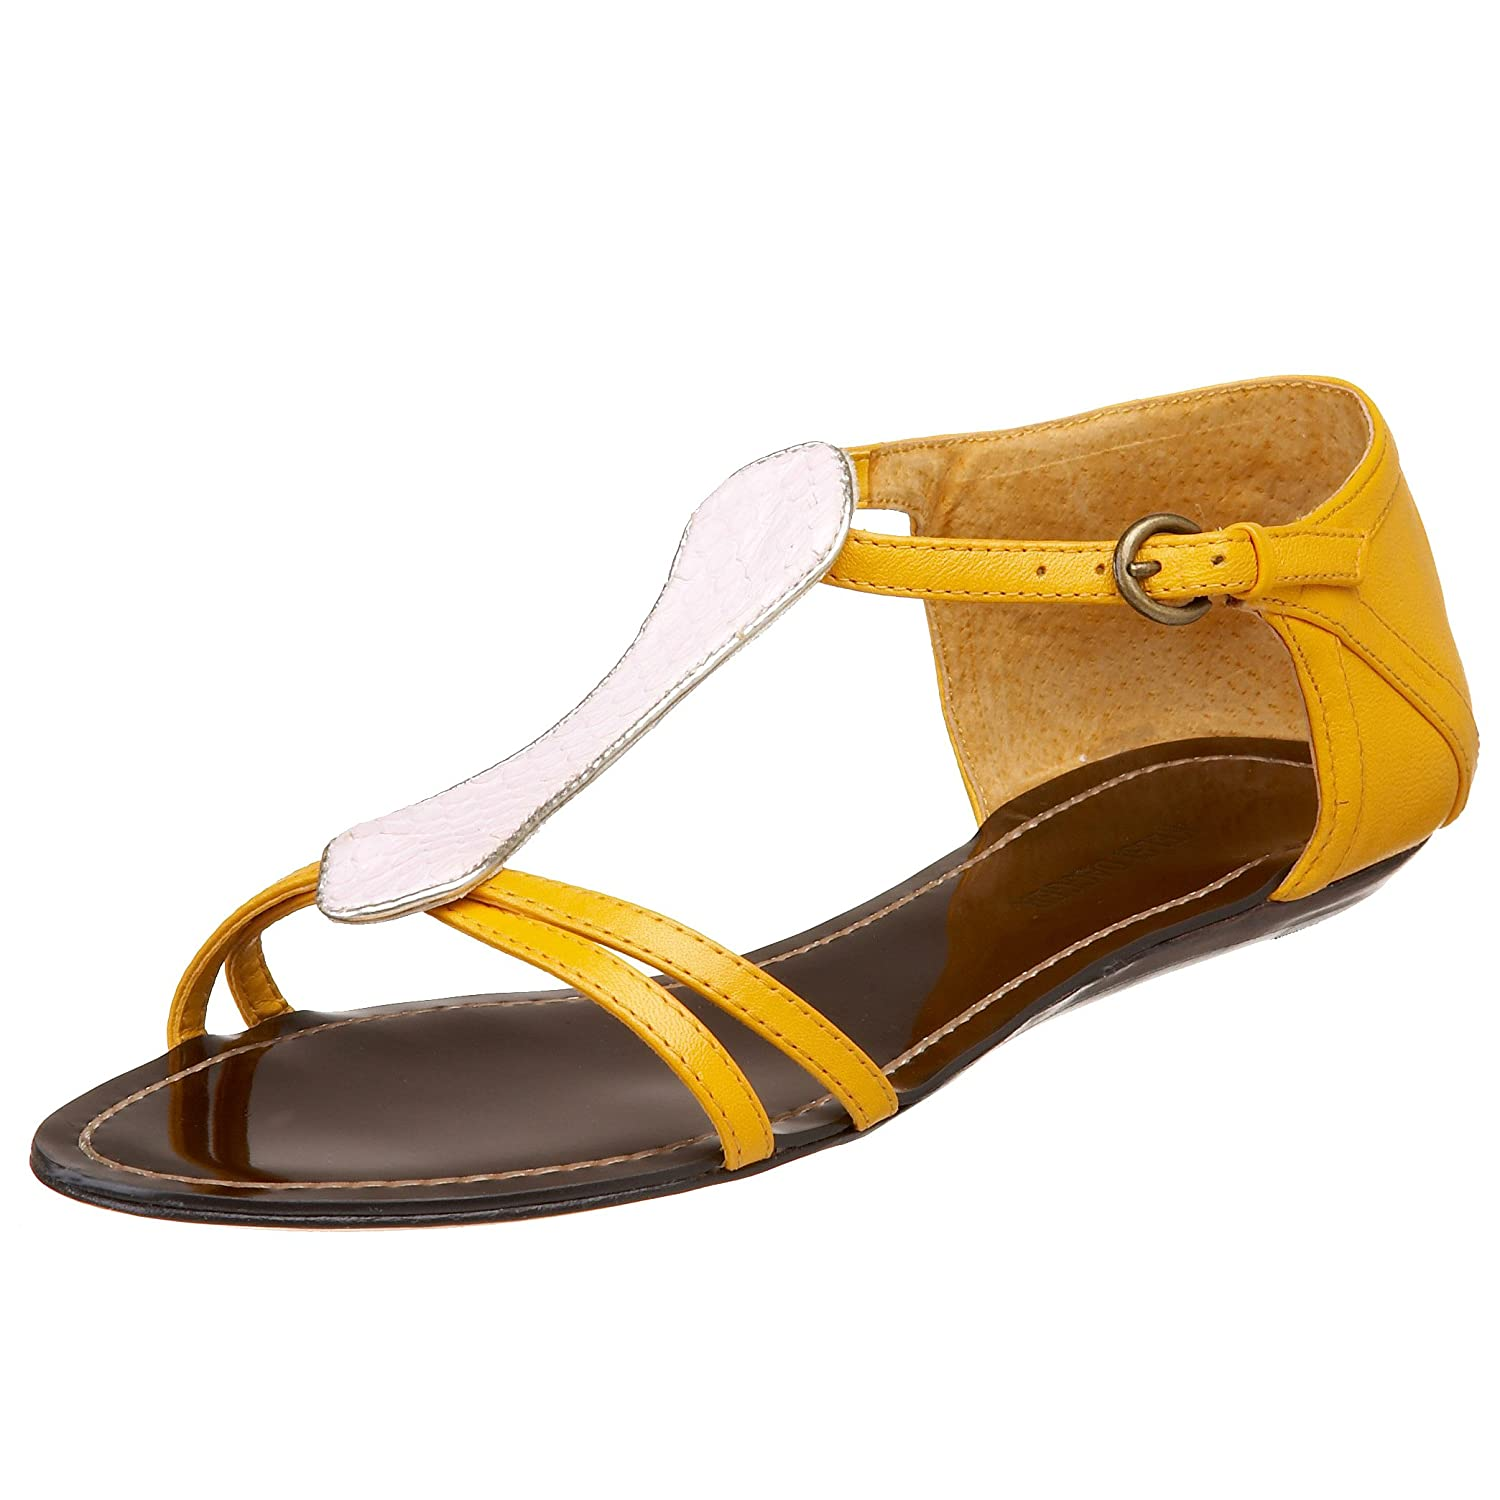 Kelsi Dagger Women's Cara T-Strap Sandal - Free Overnight Shipping & Return Shipping: Endless.com :  sandal buckle yellow flats